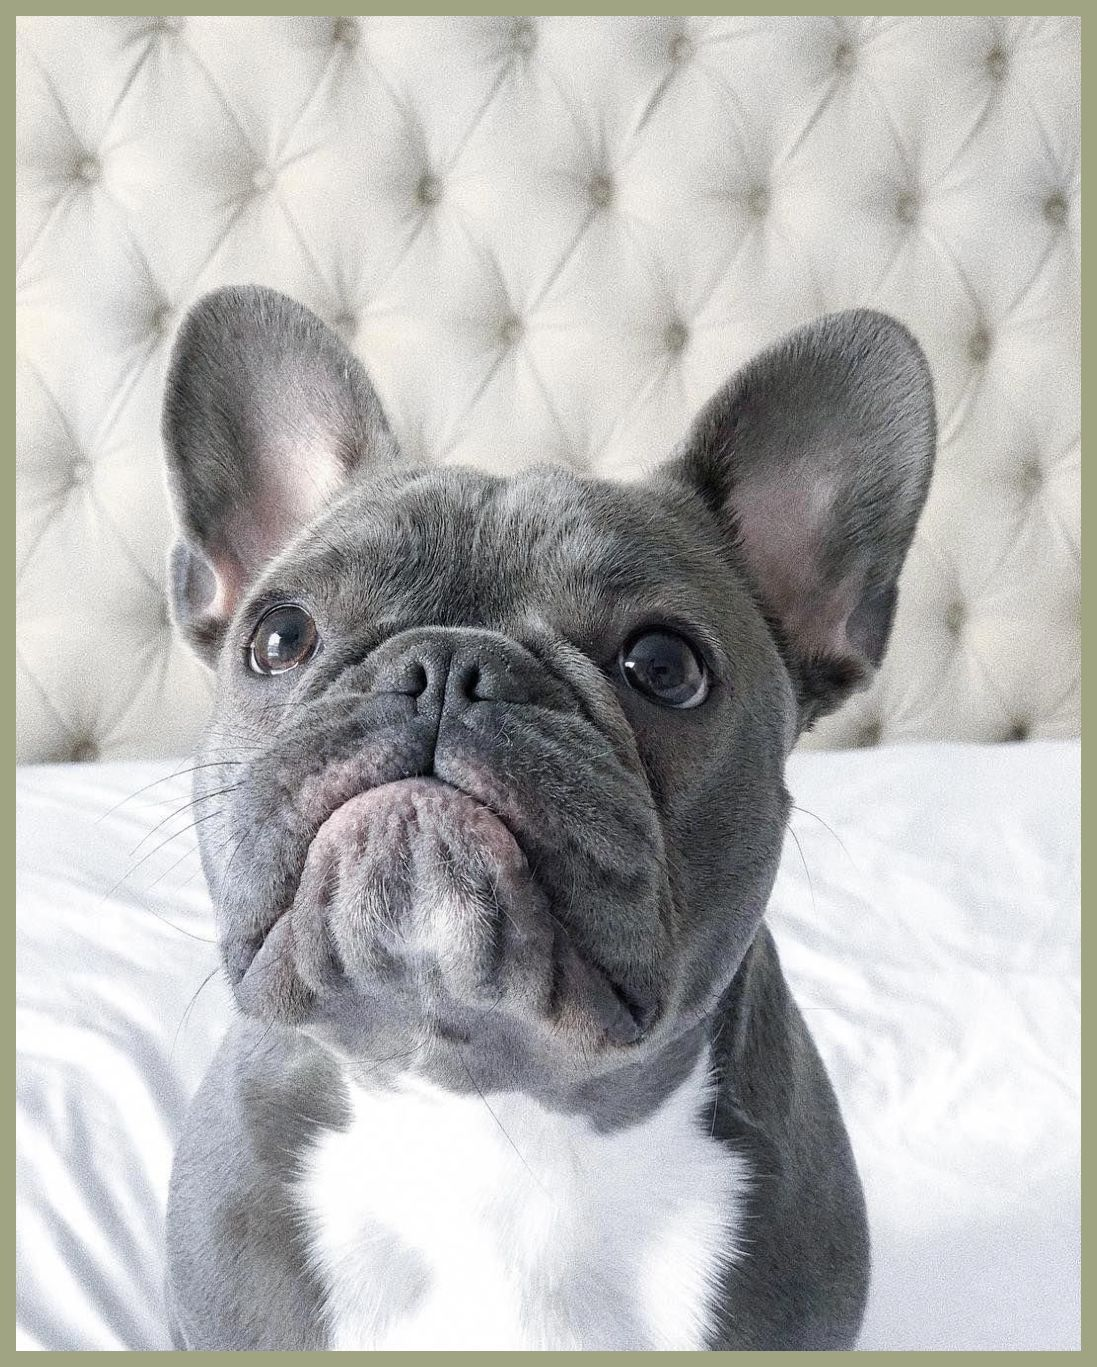 THE PRICE FRENCH BULLDOGS PAY FOR BEING SO CUTE Blue